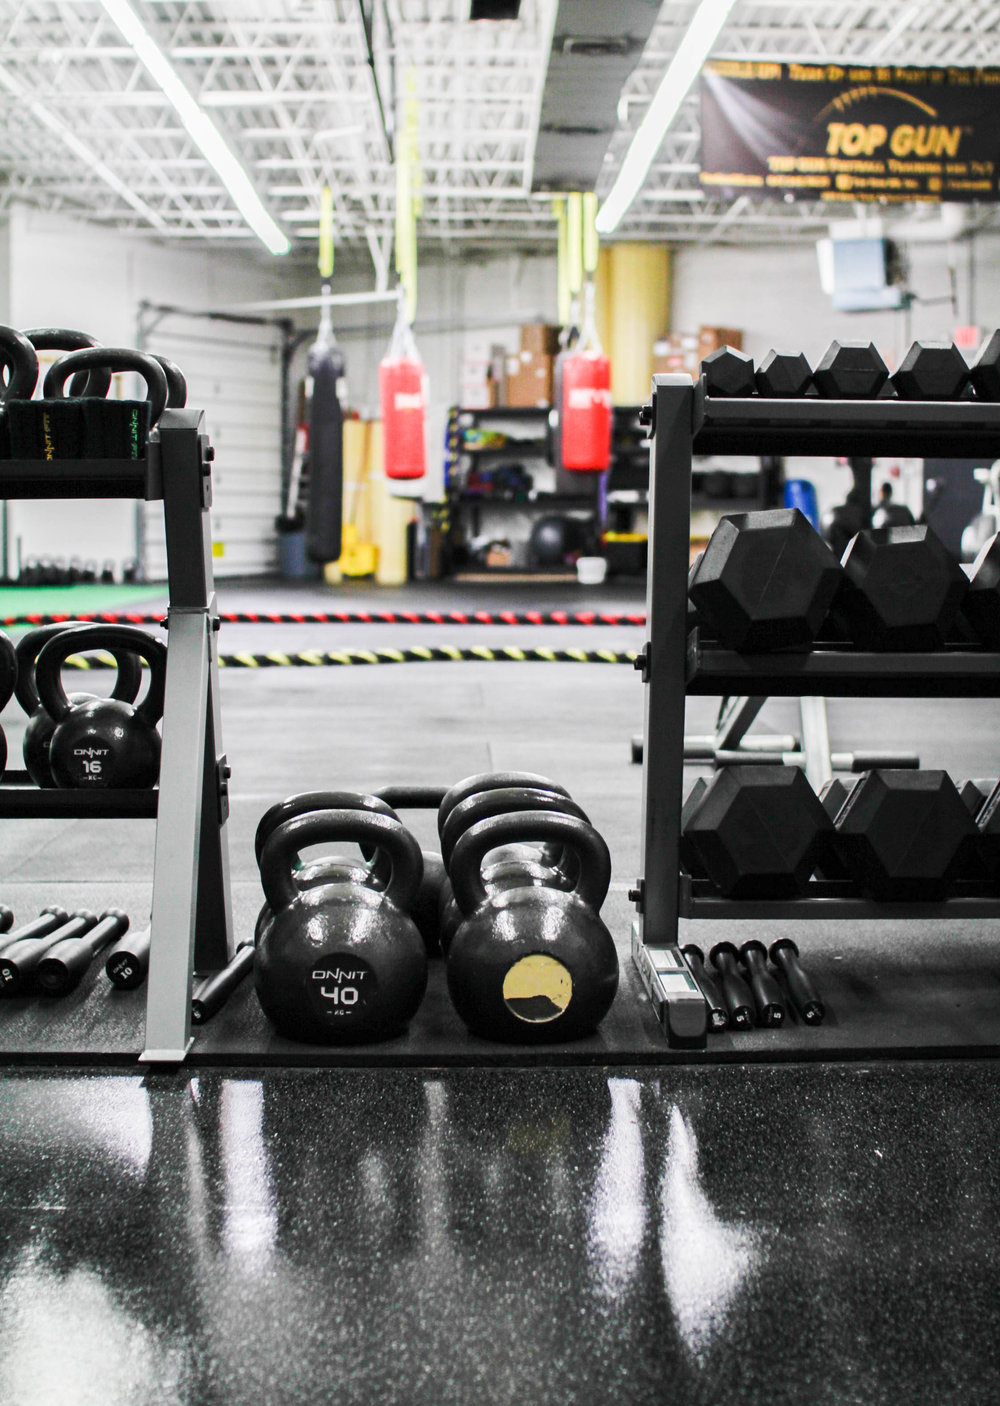 Unconventional training including clubs, kettlebells, steel mace & more!